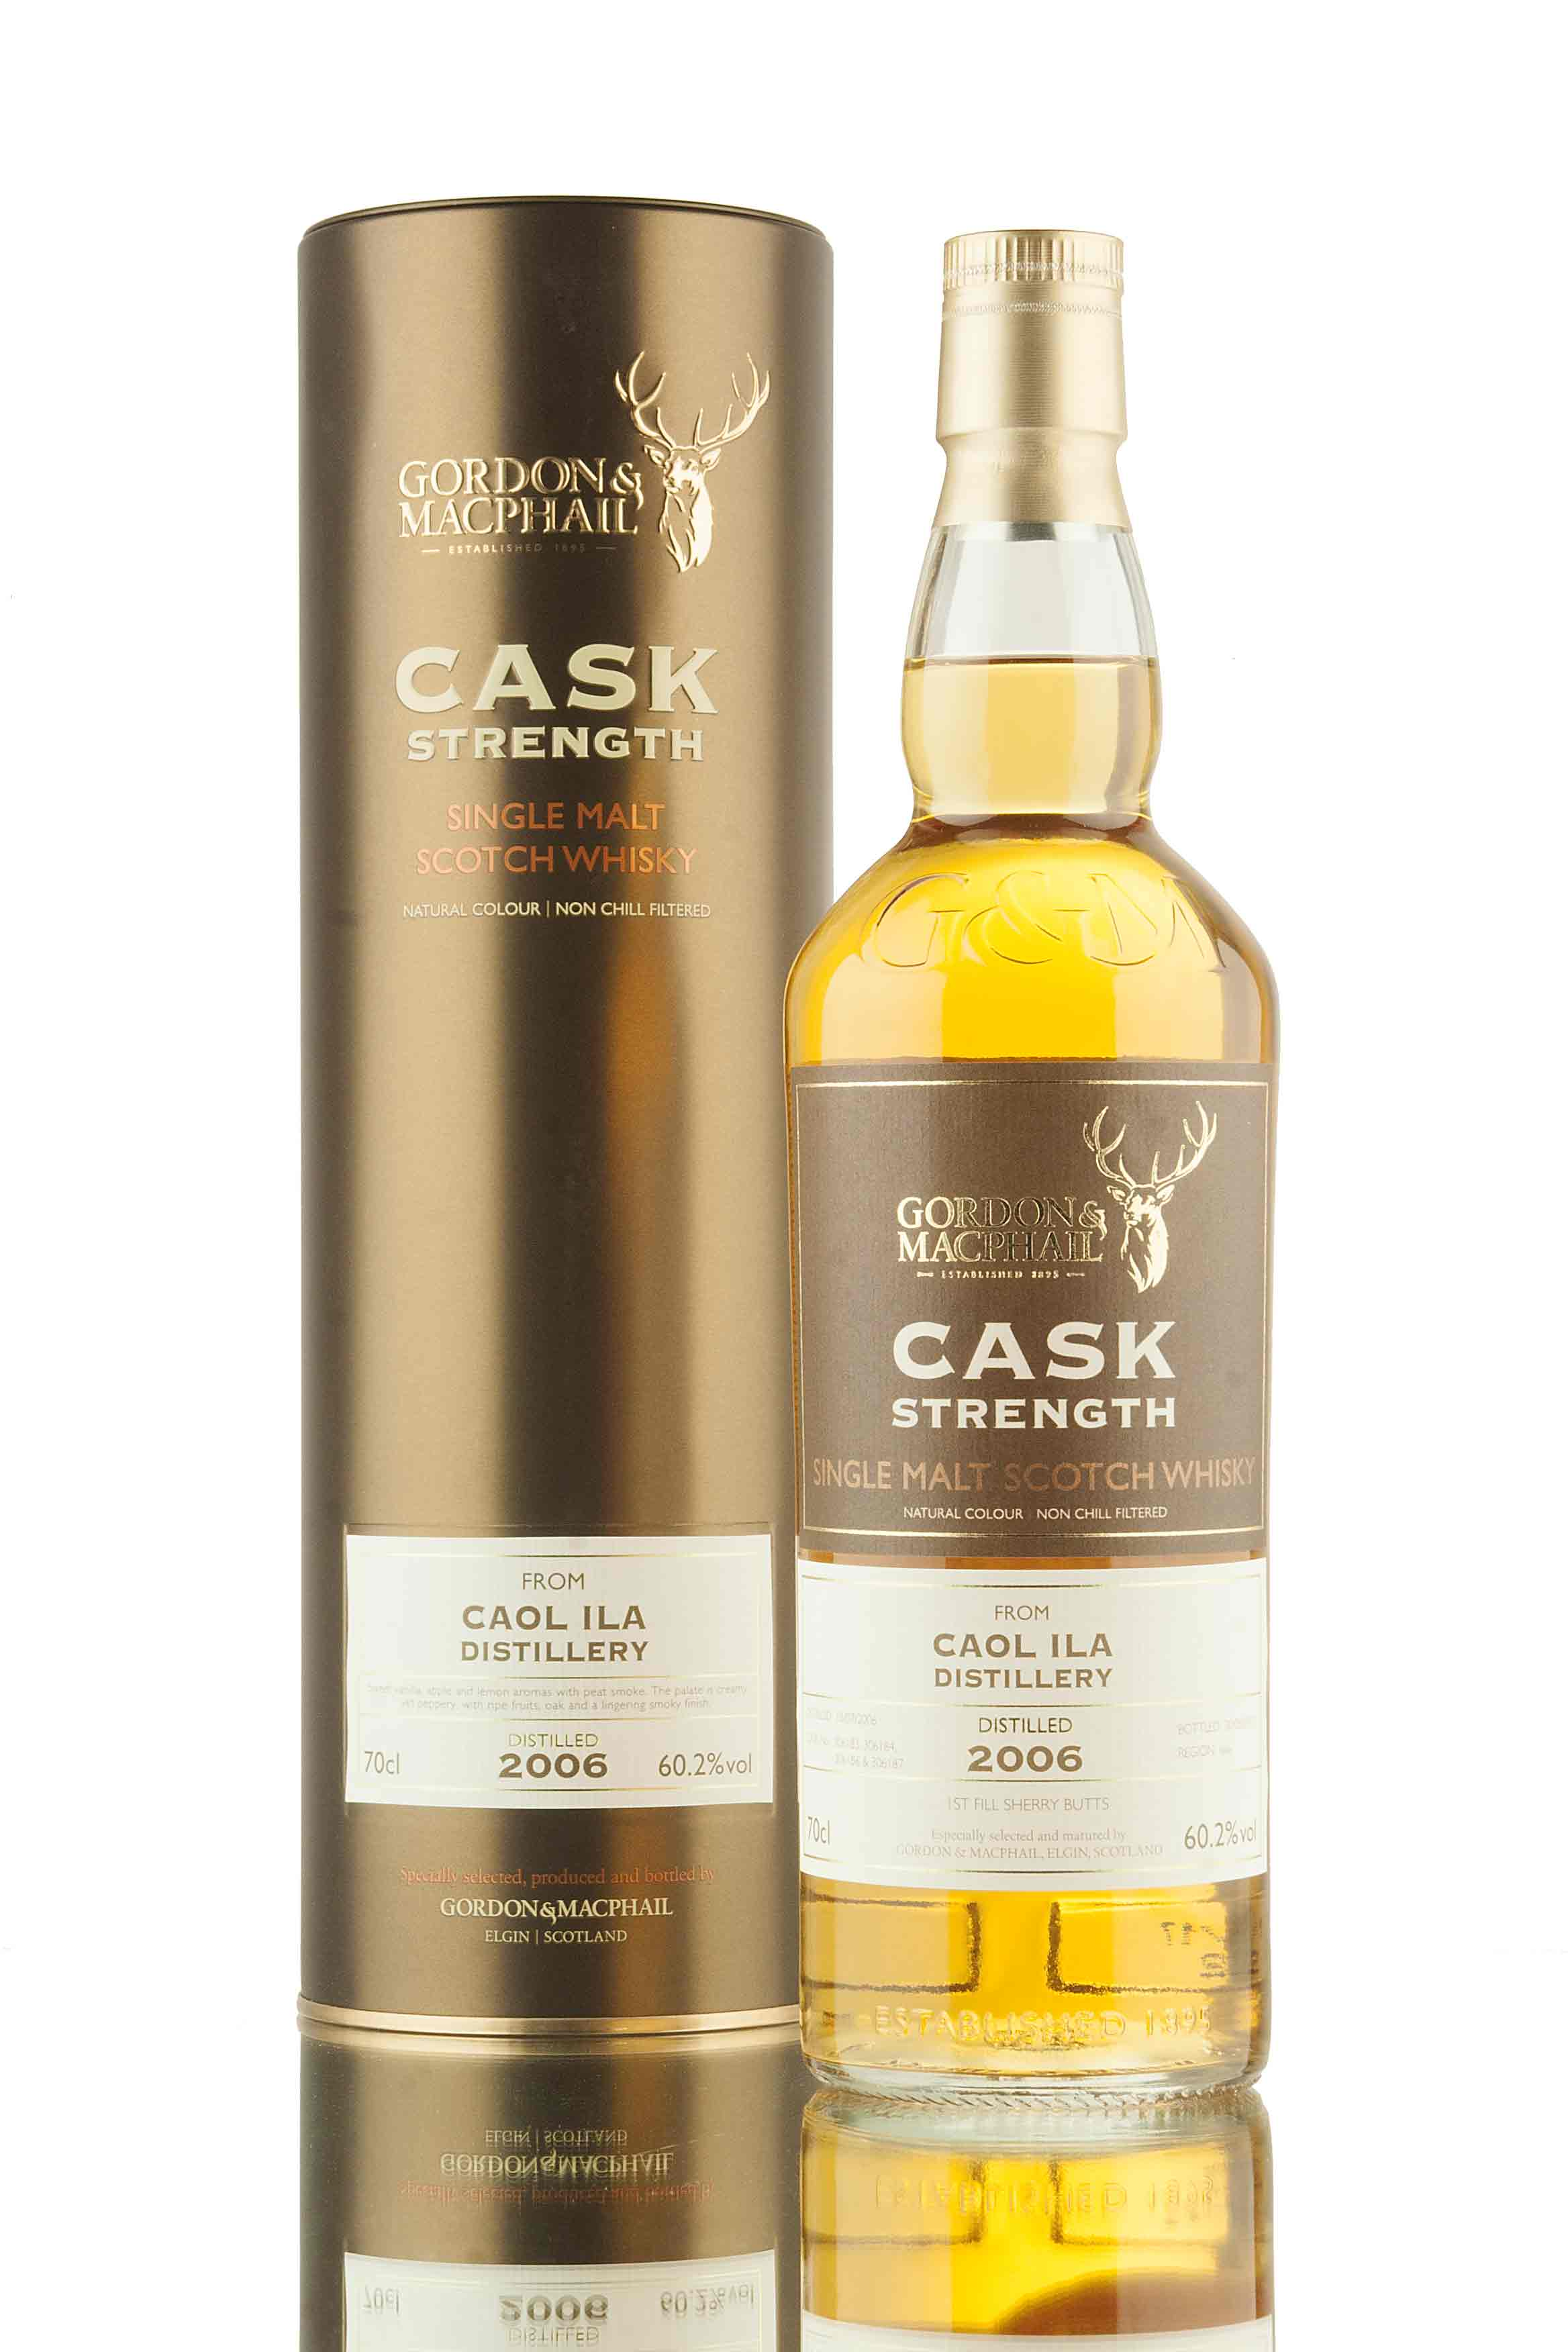 Caol Ila 10 Year Old - 2006 | Cask Strength (G&M)